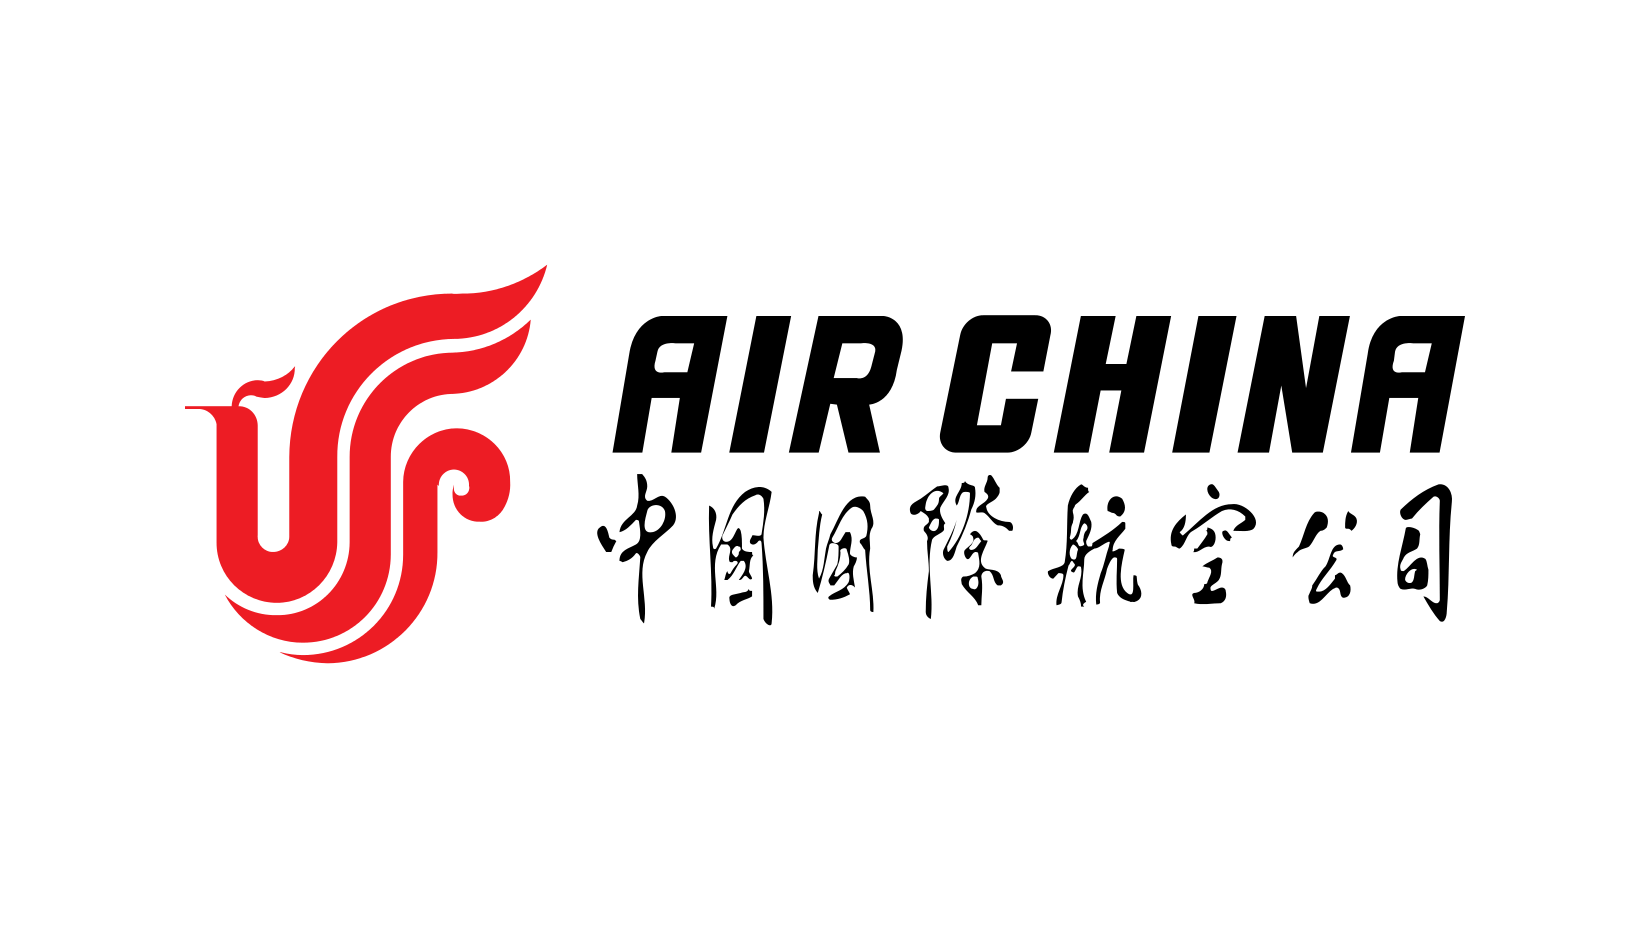 Air china logo png. Airline